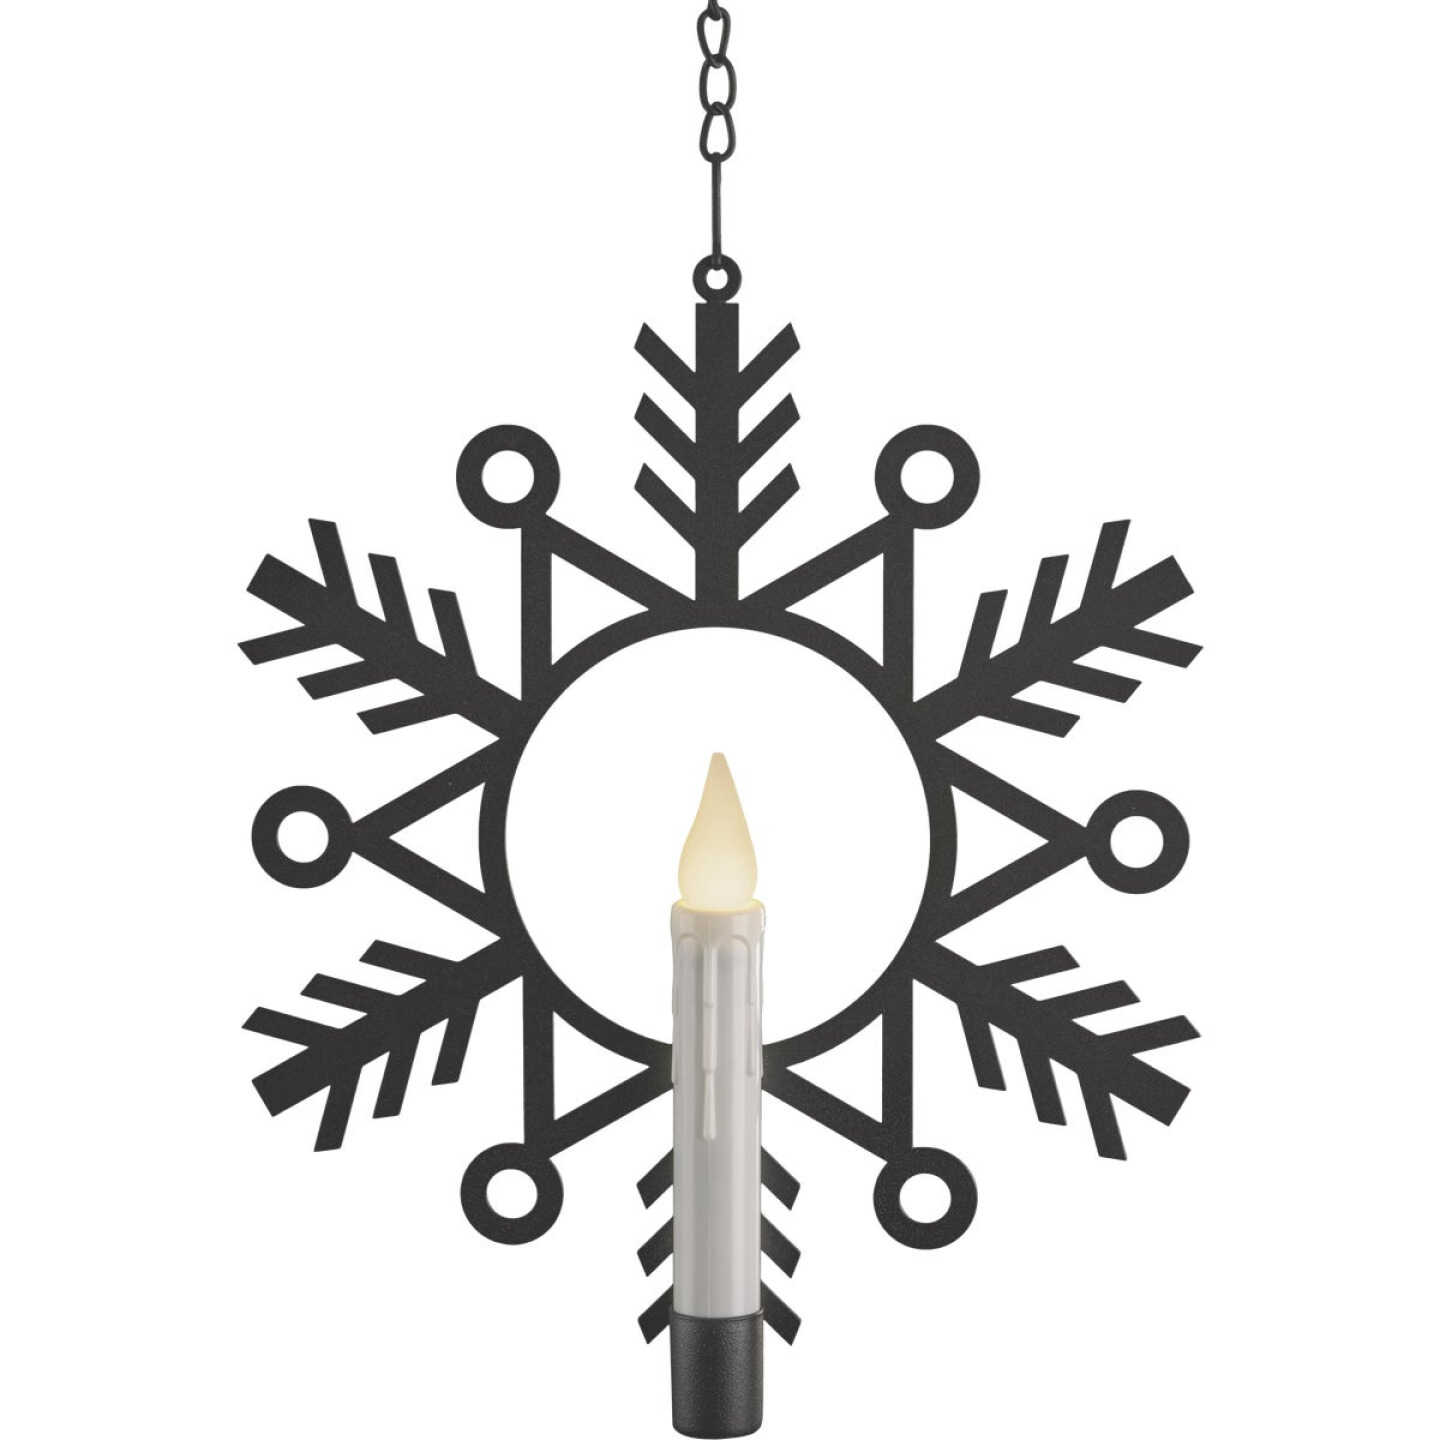 Xodus 12 In. x 9-1/2 In. x 3/4 In. Aged Bronze LED Battery Operated Wreath with Candle Image 1